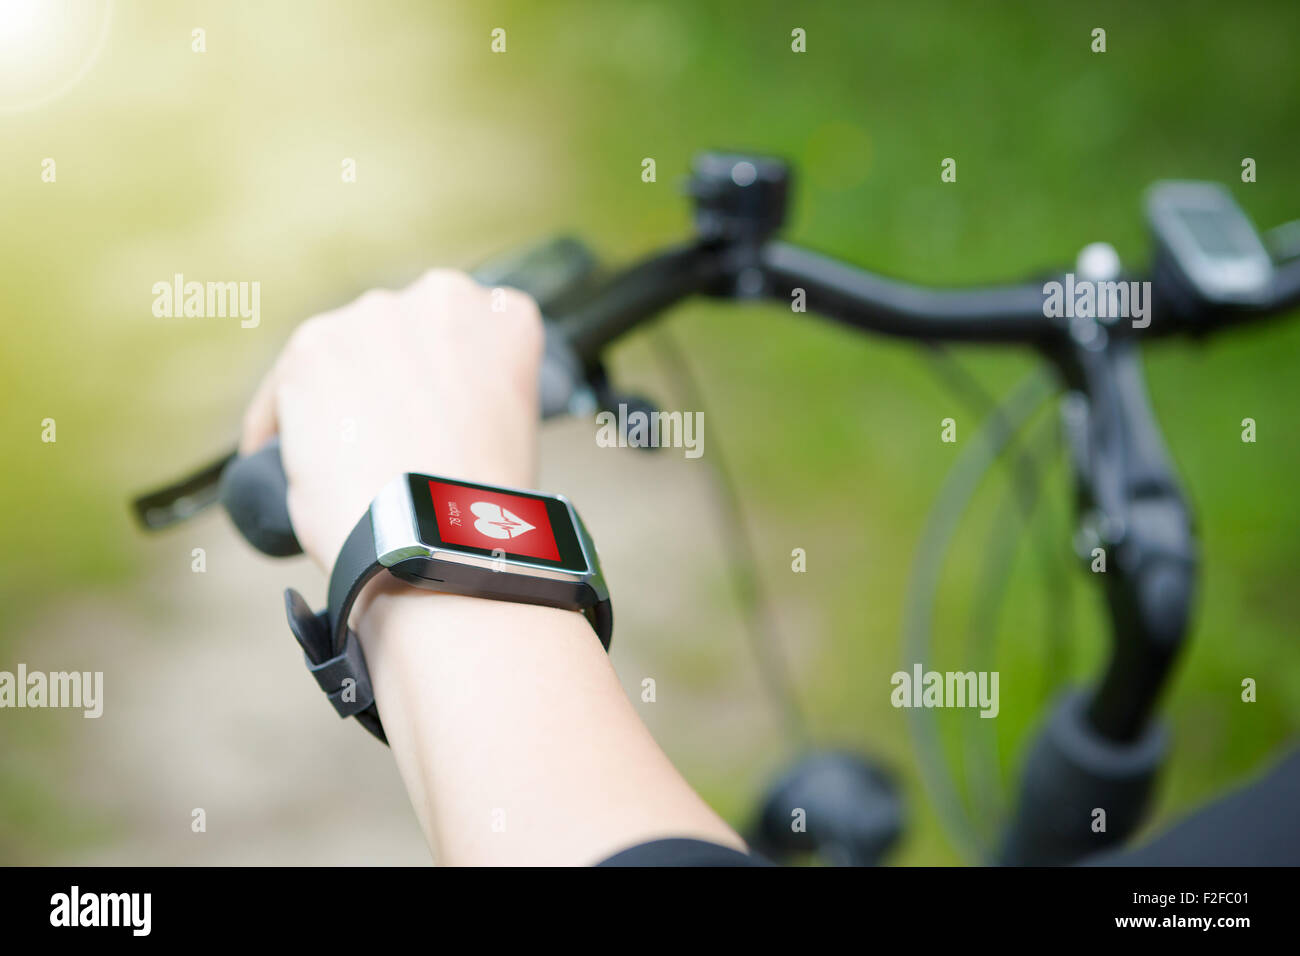 La donna in sella a una moto con un smartwatch monitor frequenza cardiaca. Orologio intelligente concetto. Immagini Stock